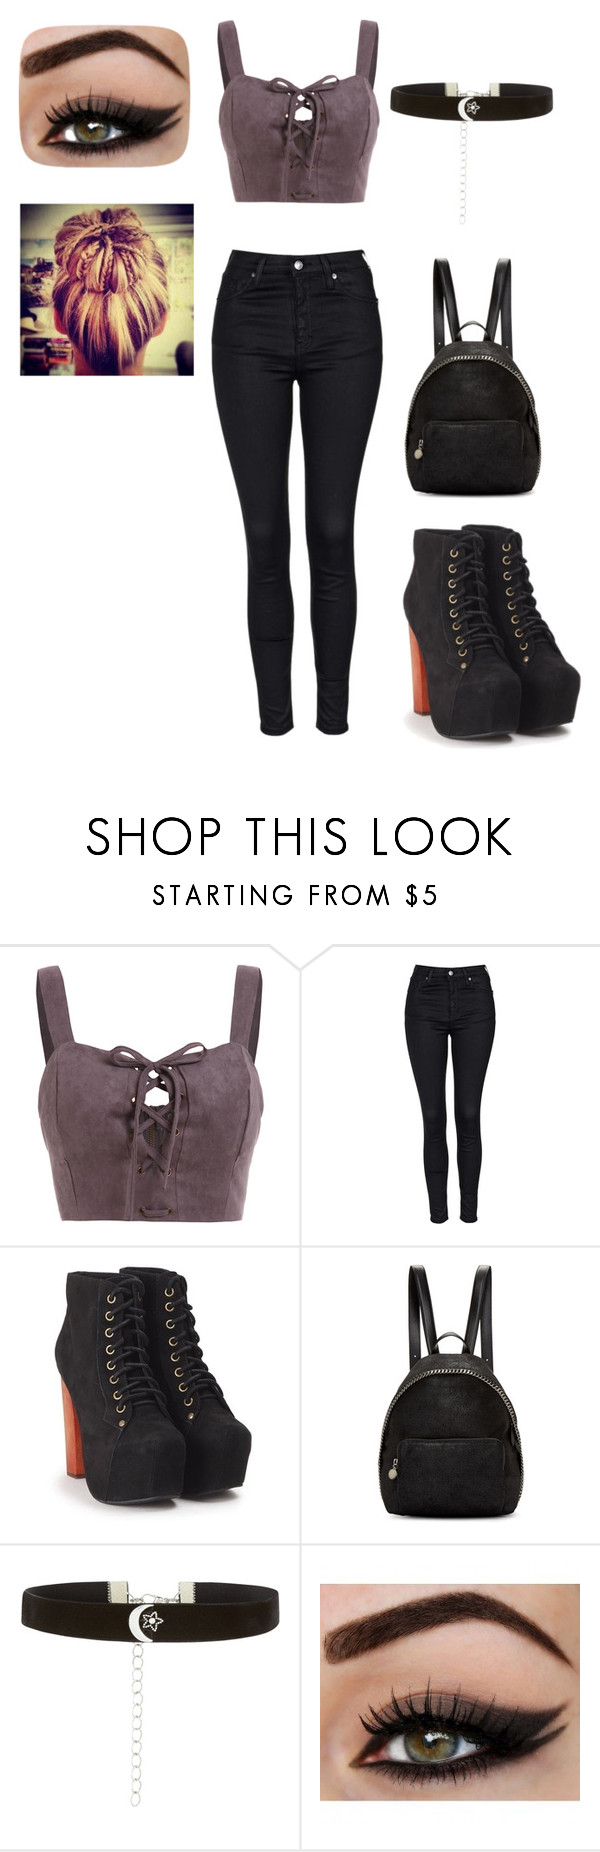 """Random Outfit 4"" by kayla2558 ❤ liked on Polyvore featuring Topshop, Jeffrey Campbell, STELLA McCARTNEY and New Look"